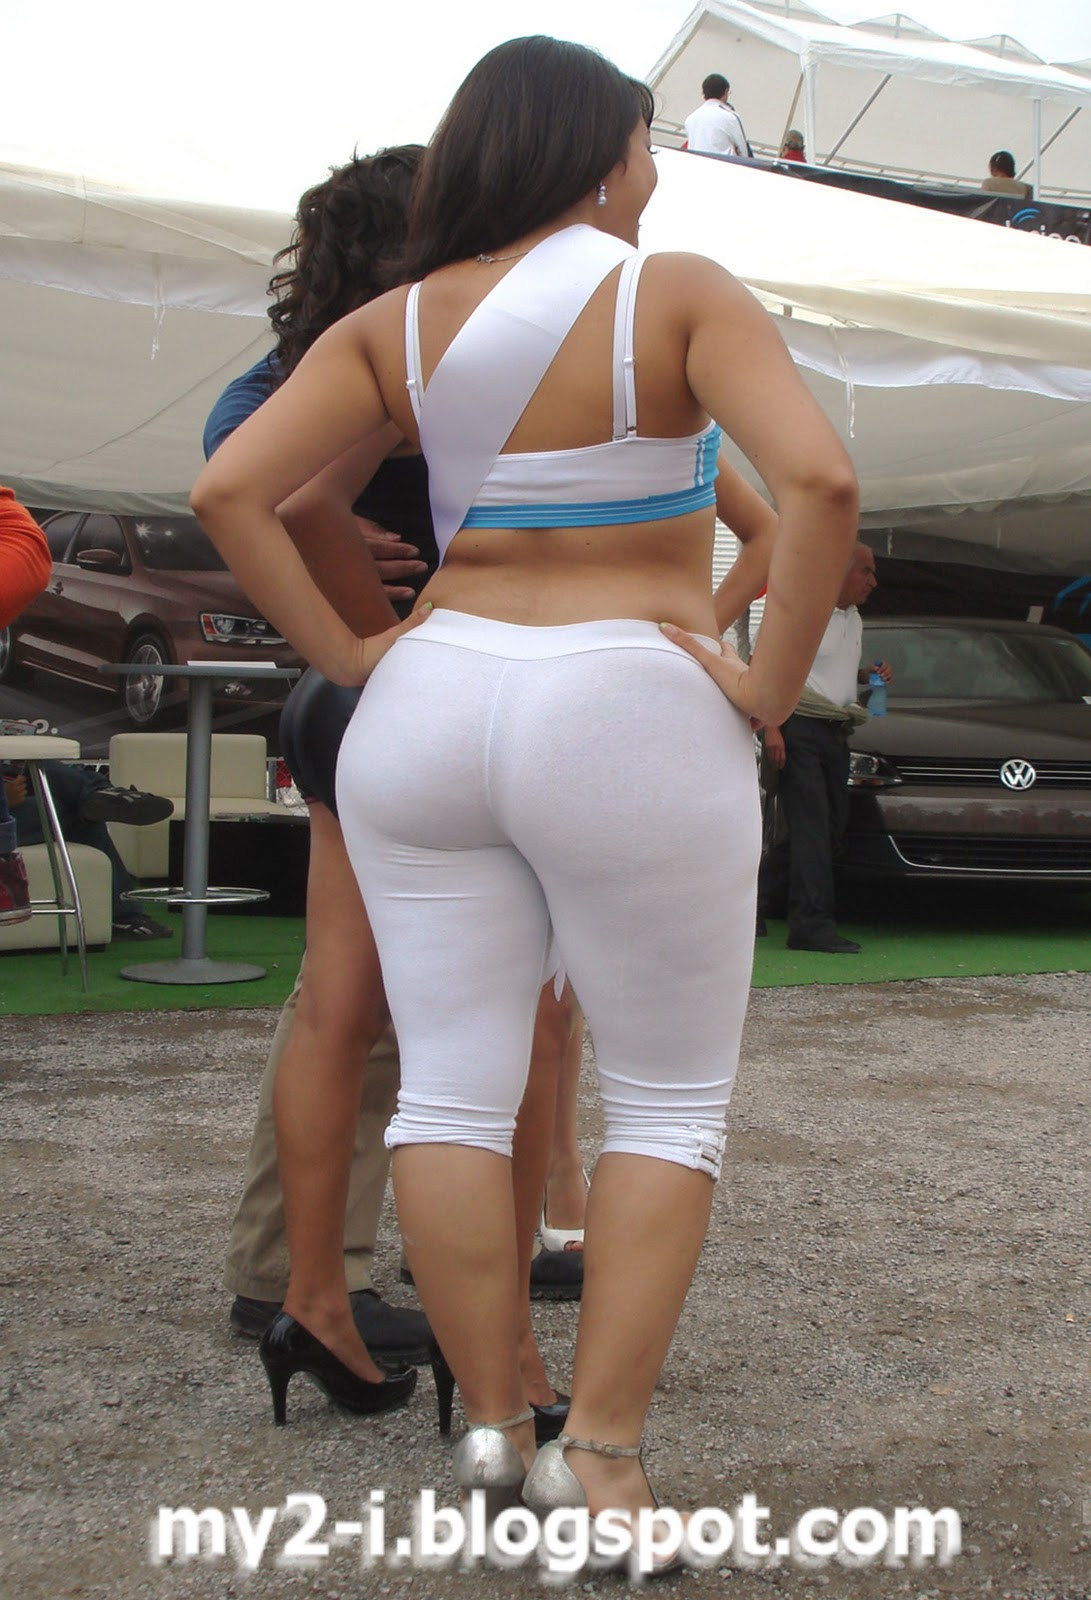 Naked White Women With Wide Hips Big Ass